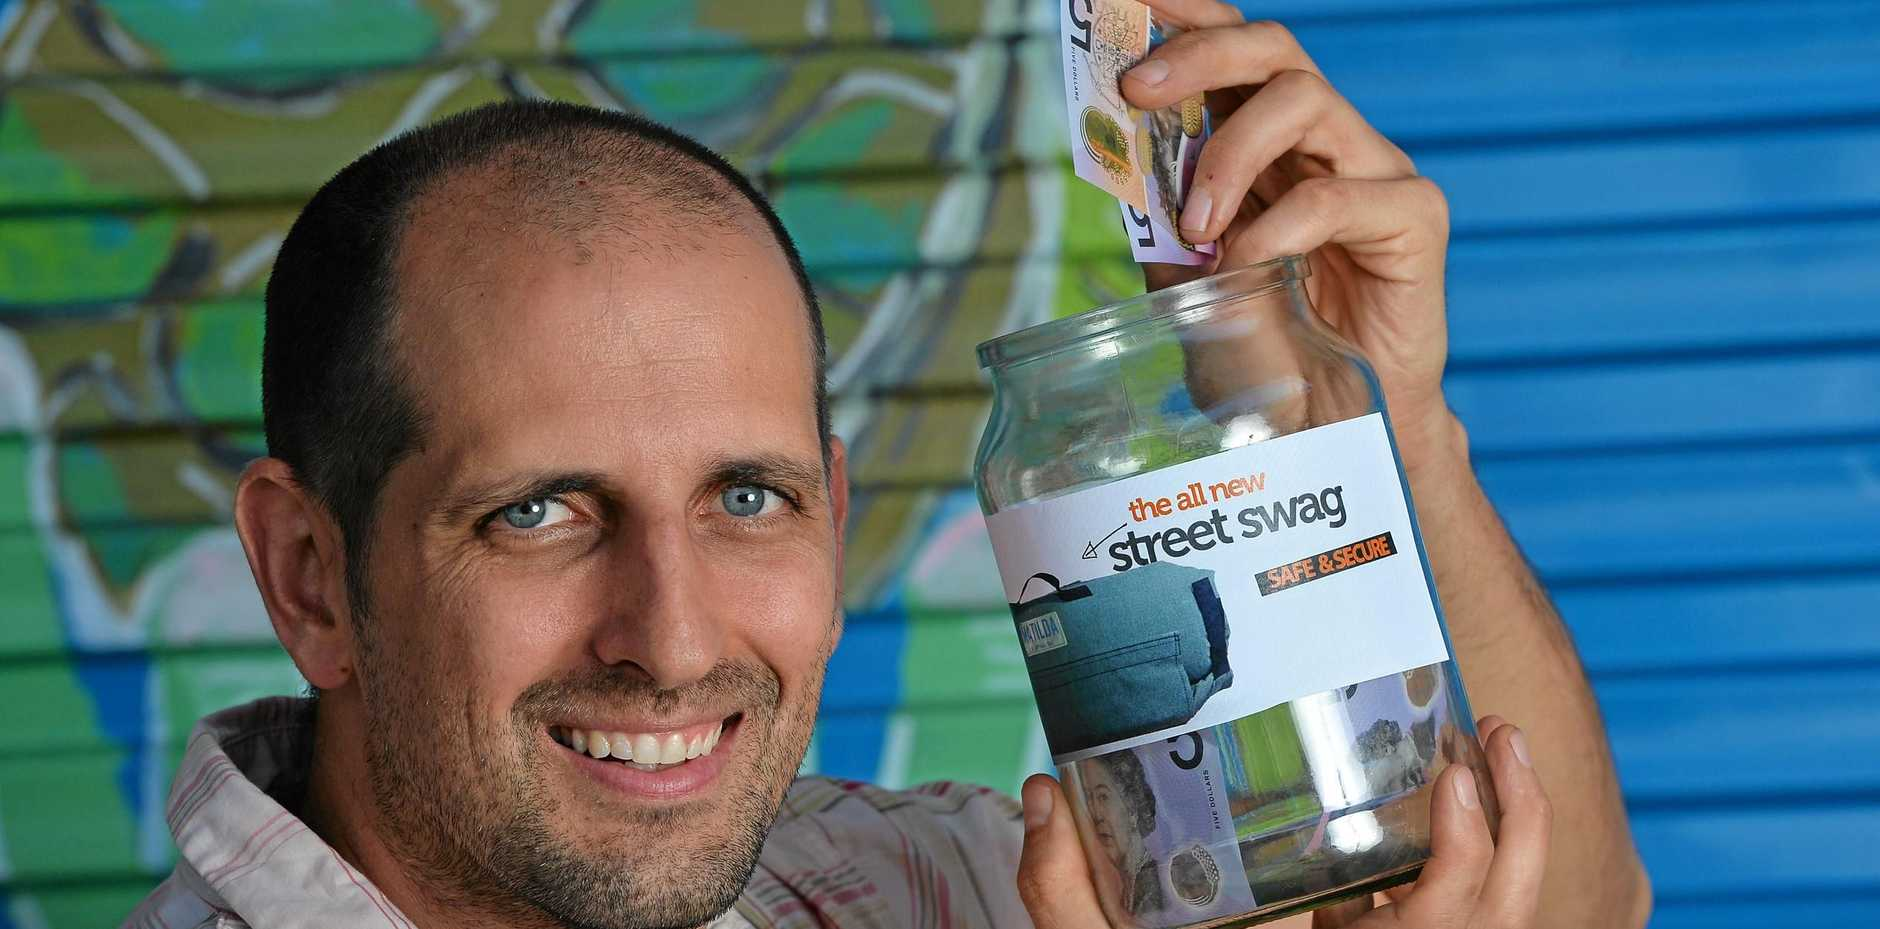 LENDING A HELPING HAND: Tomas Passeggi ramping up fundraising efforts for street swags.